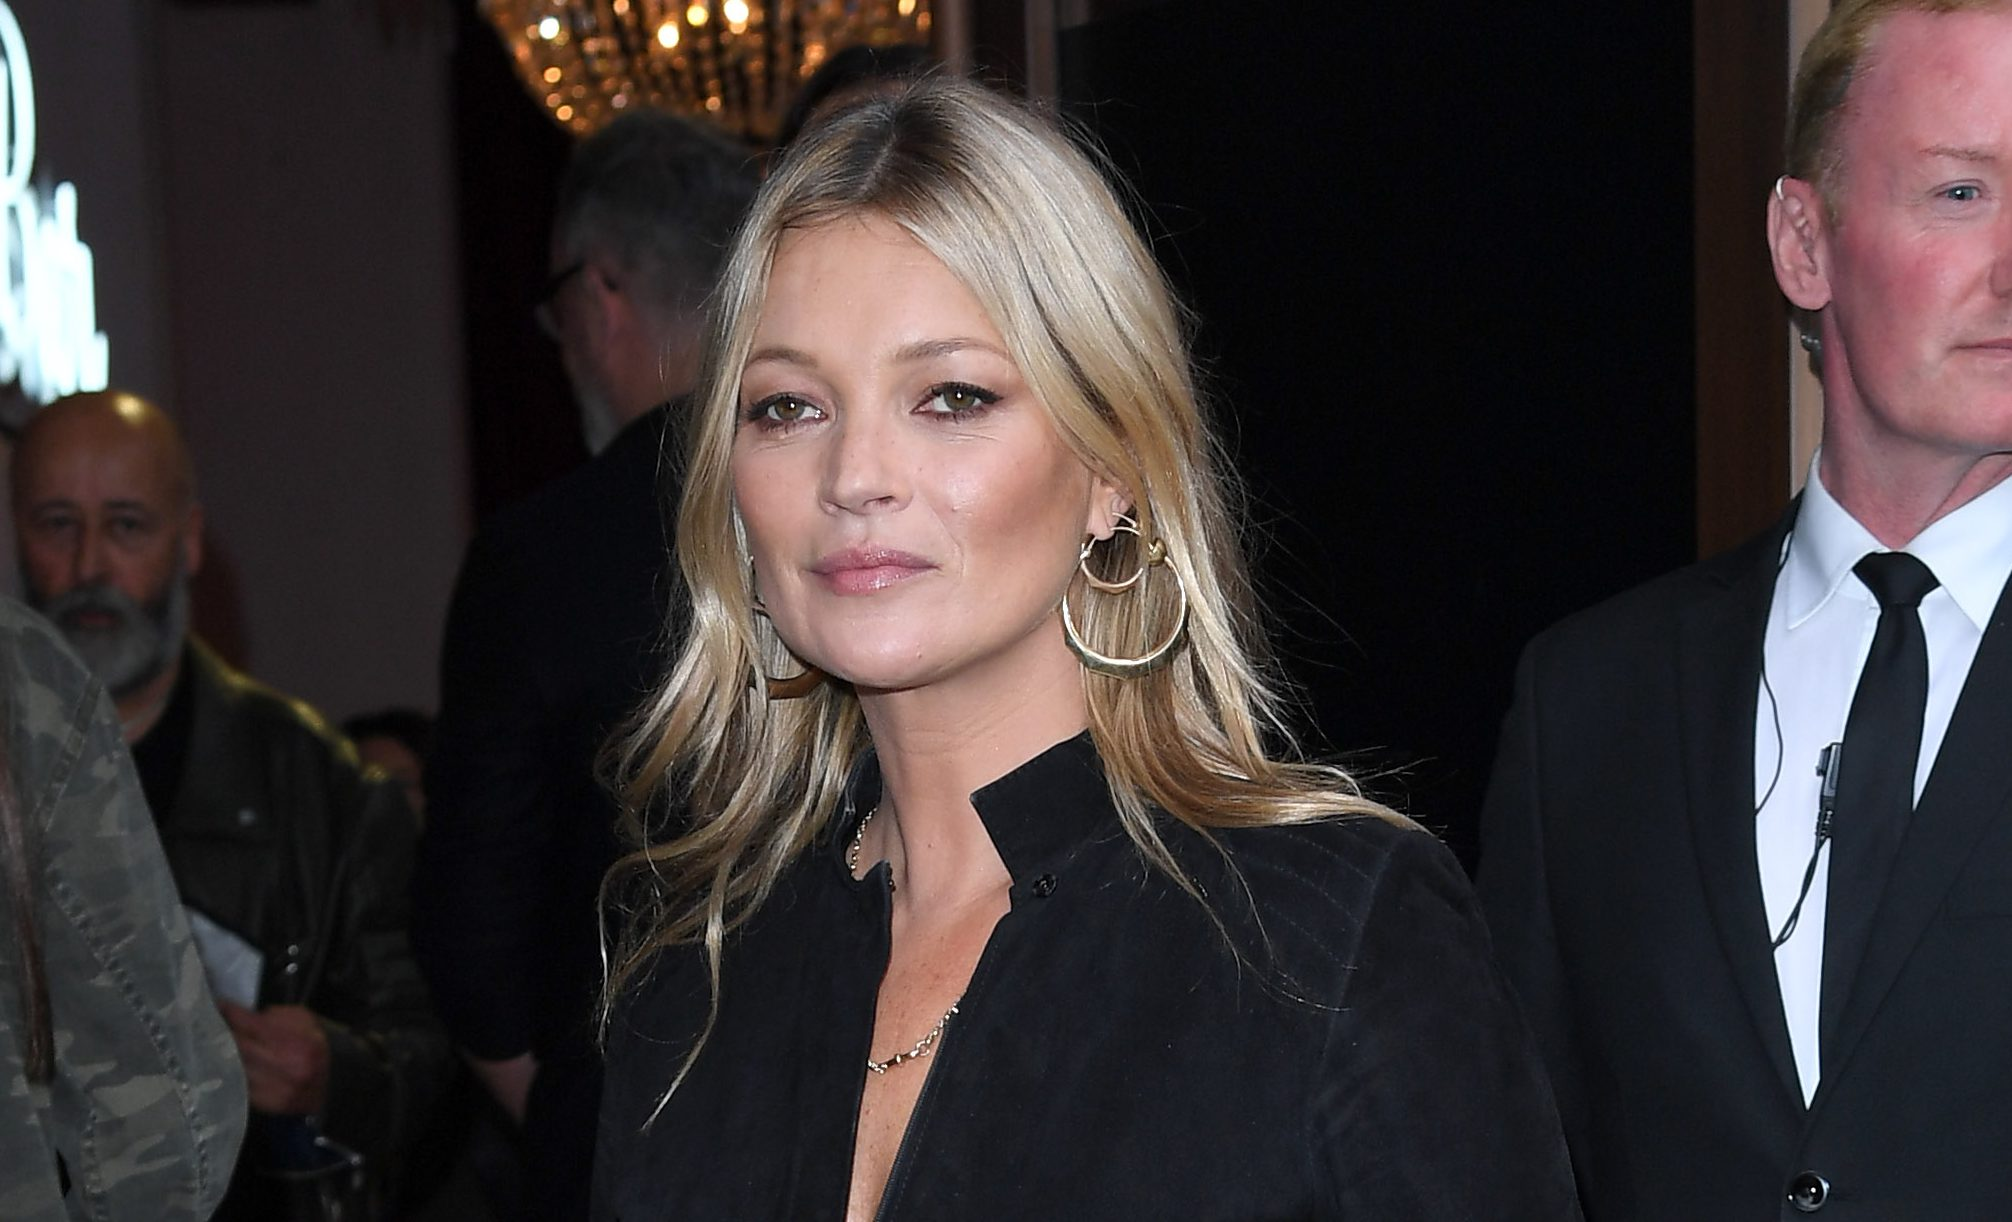 Kate Moss felt 'pressured' into posing topless when she was younger